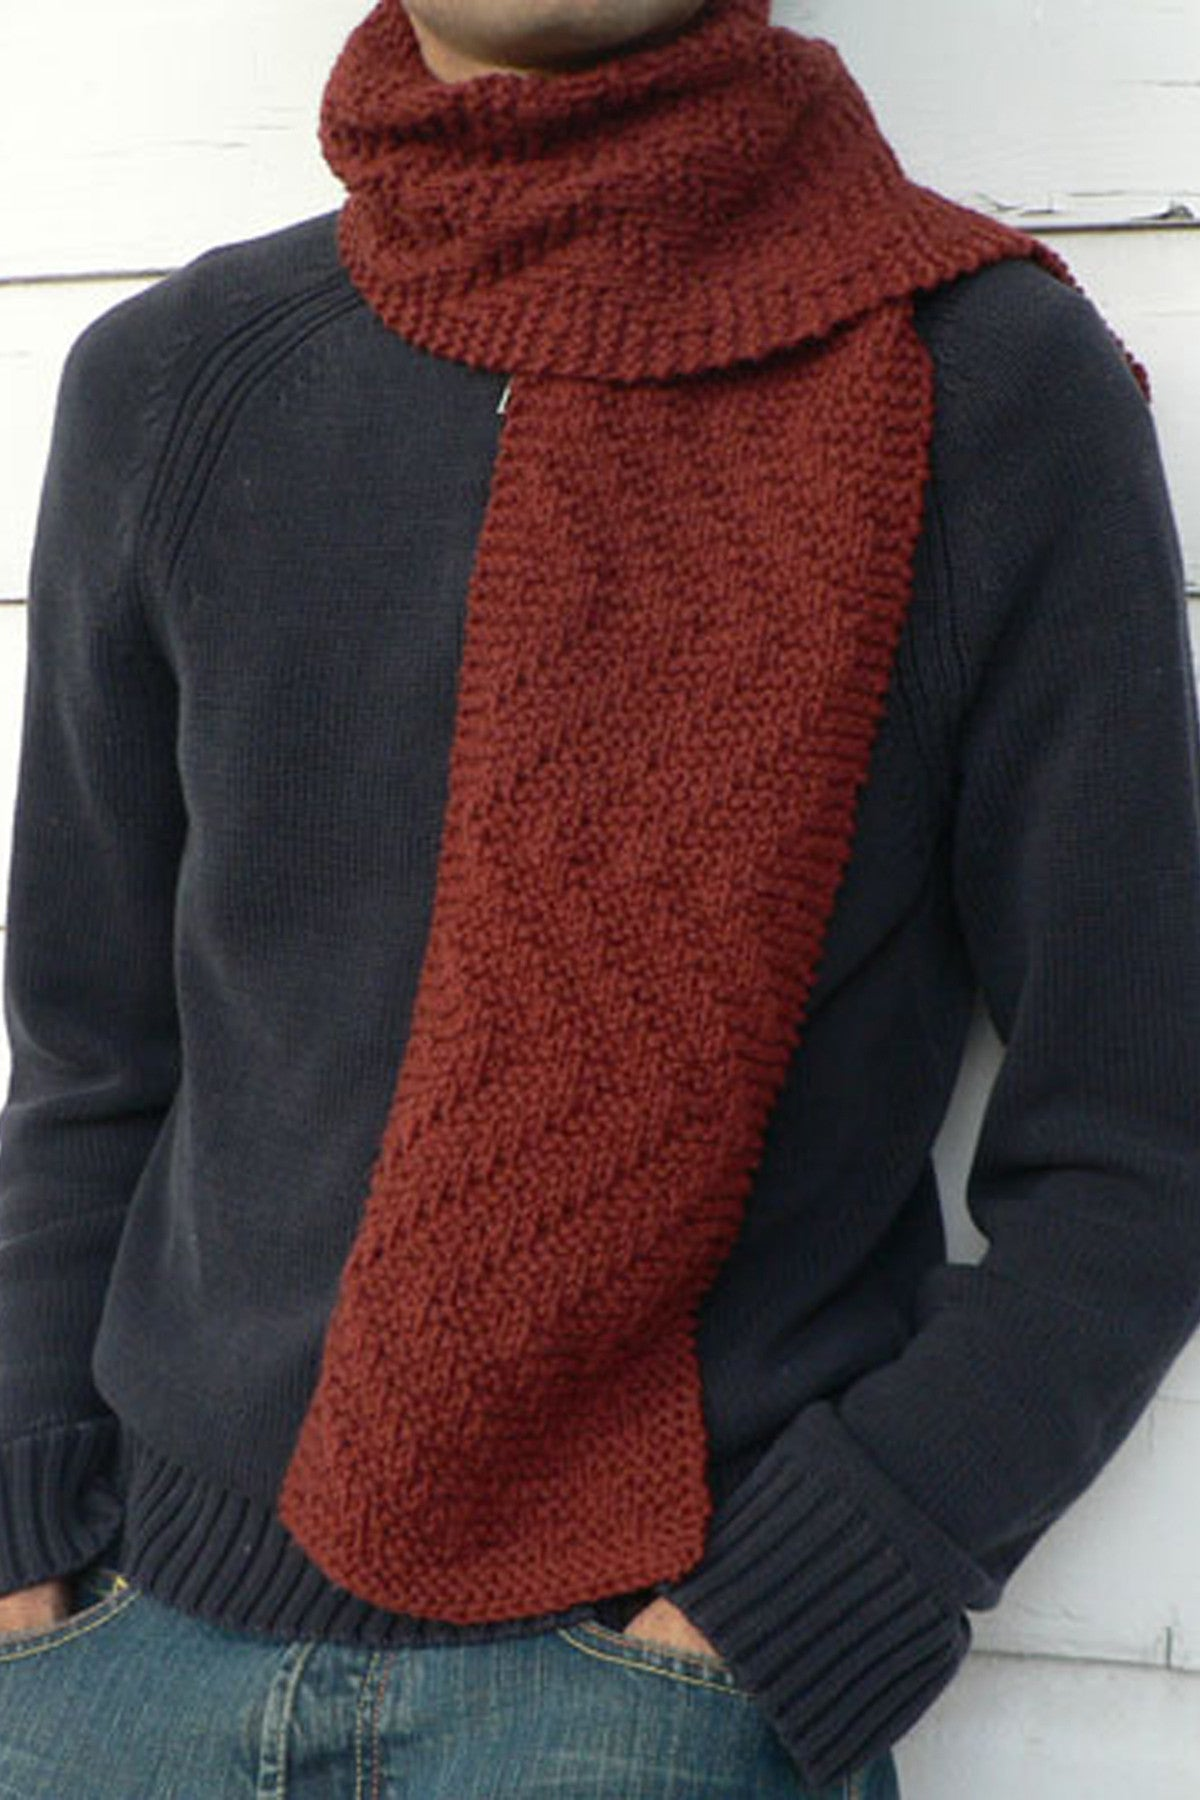 Rambler's Scarf with textured zig-zag knitting pattern for men.